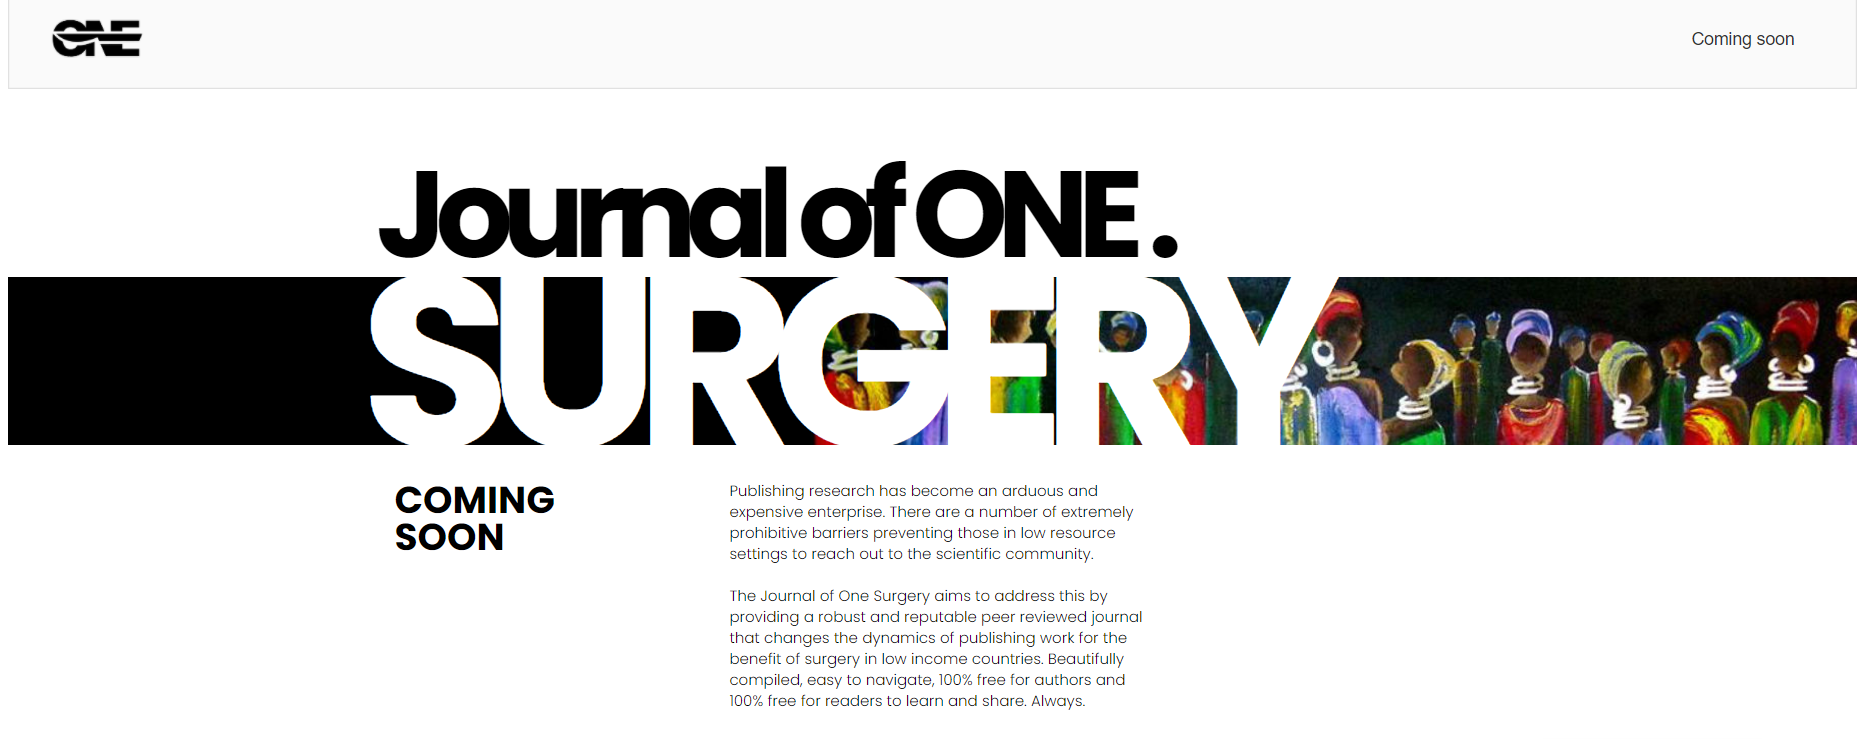 One Surgery Journal